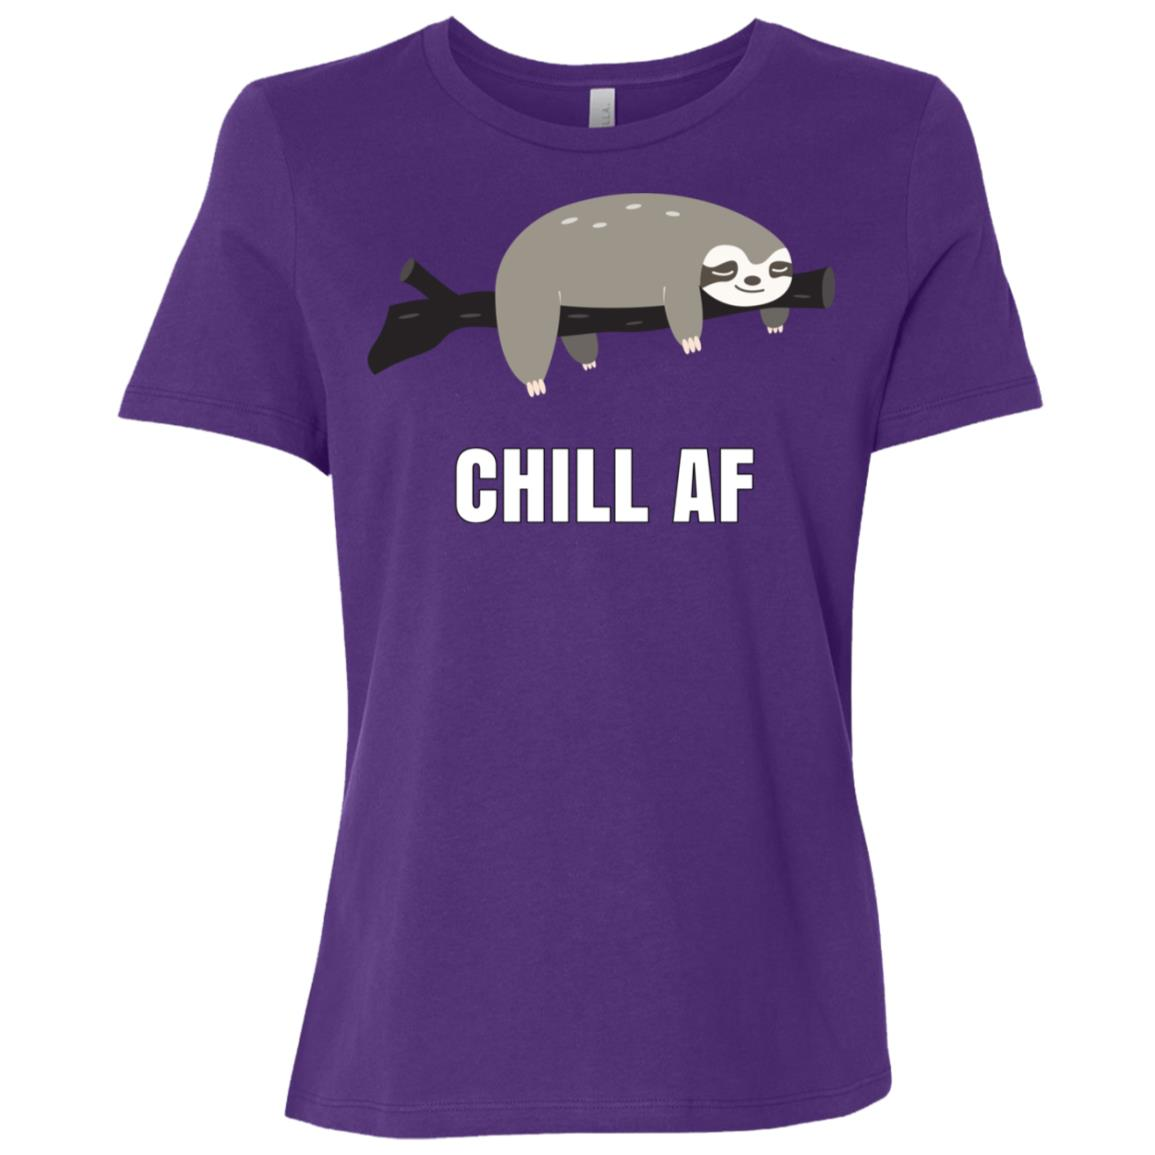 Chill Af Sloth Lounging On A Tree Branch Women Short Sleeve T-Shirt